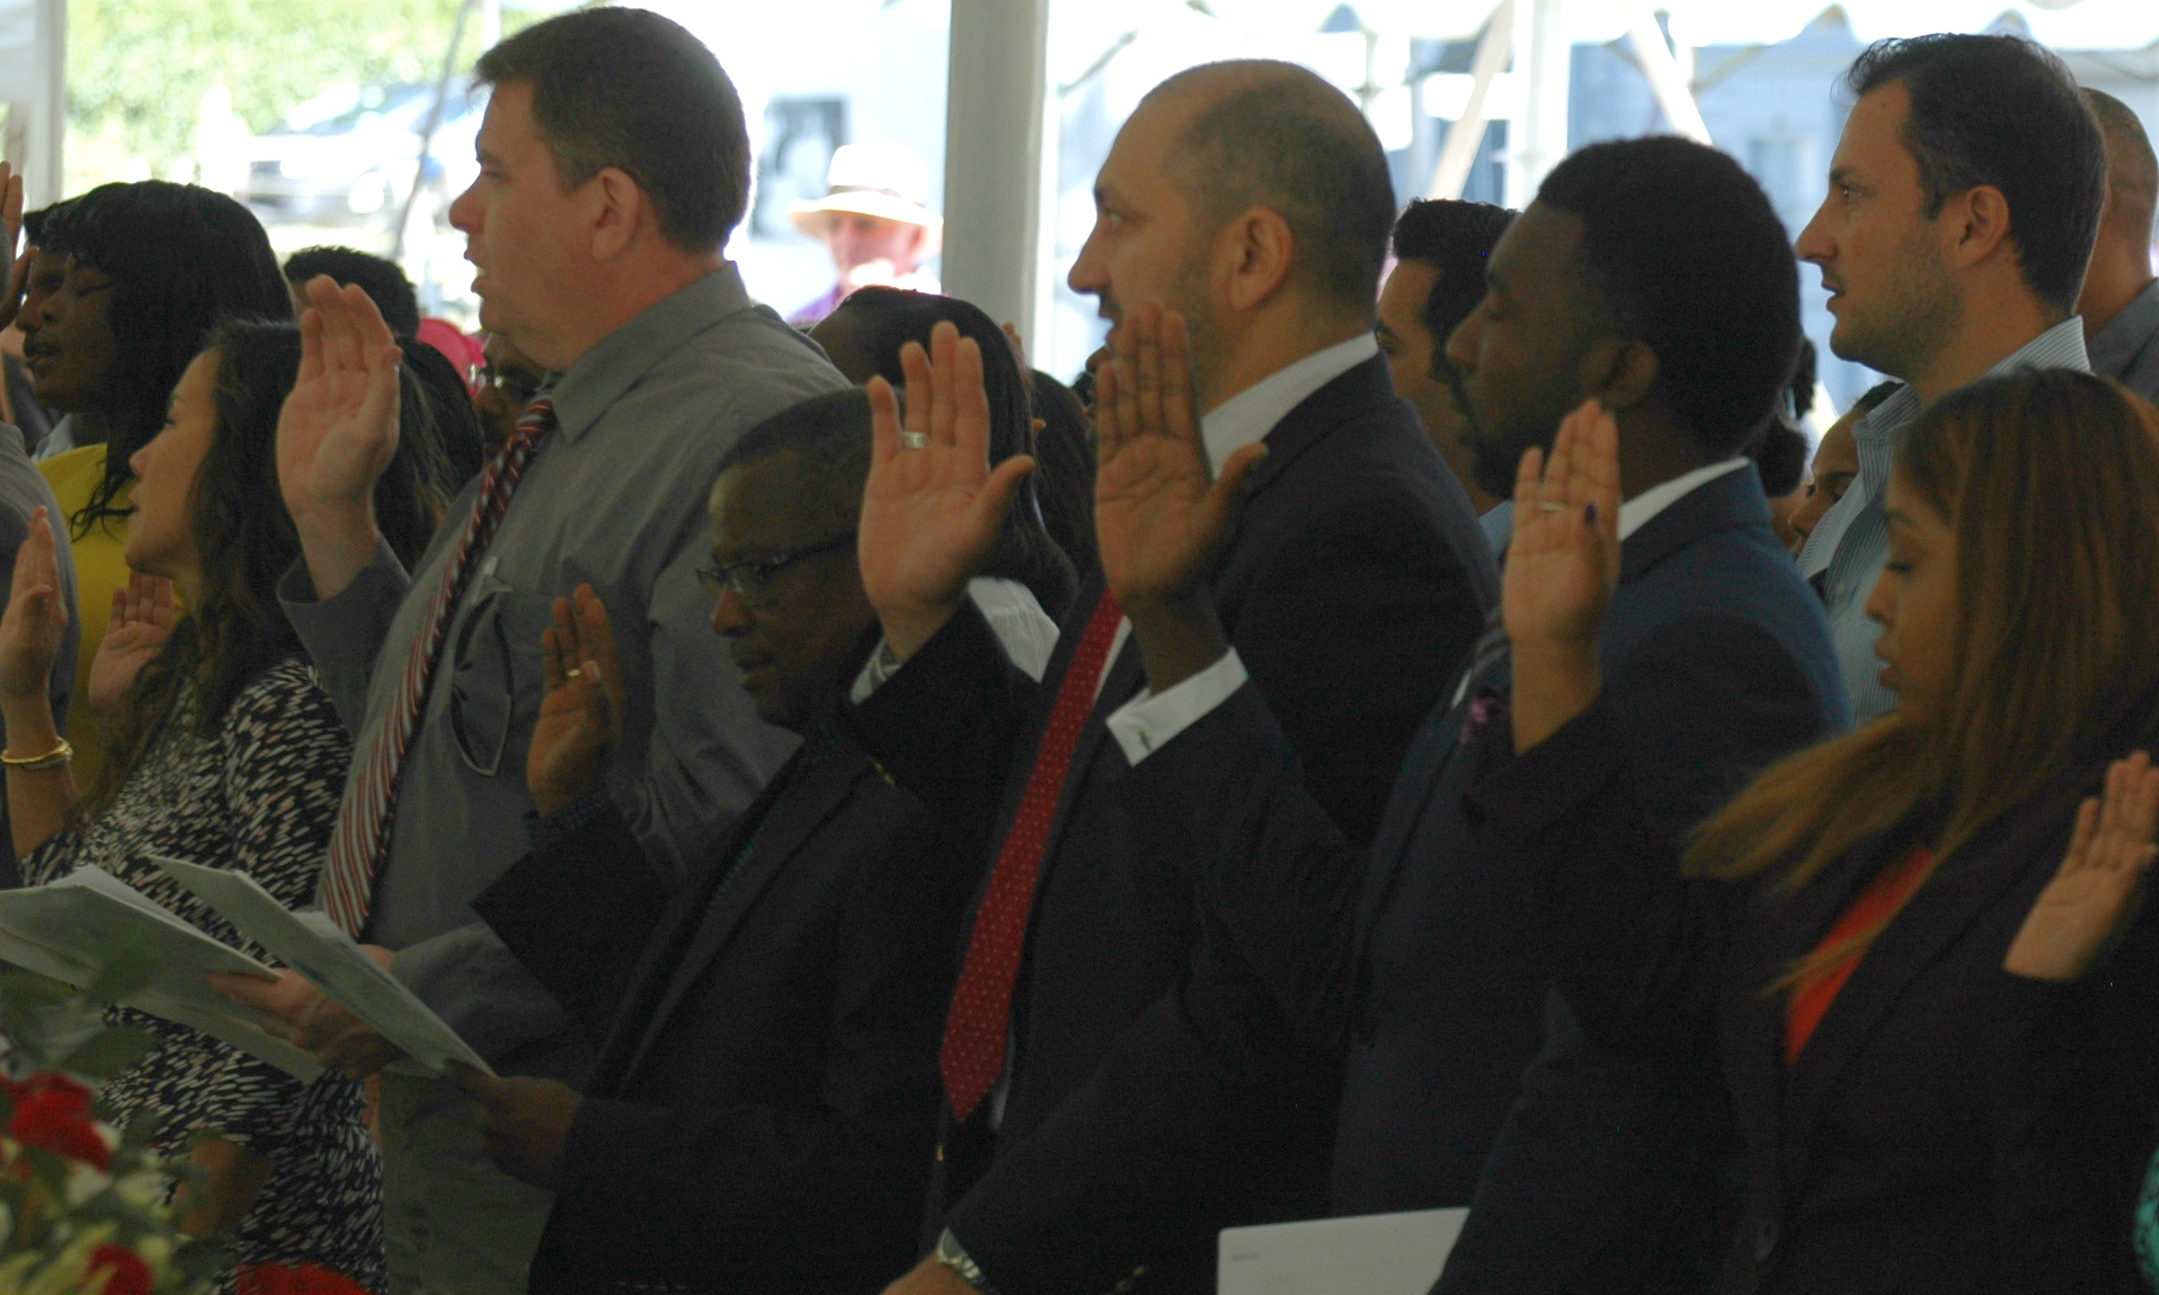 People from around the world taking the oath of citizenship. NPS/Clayton Hanson